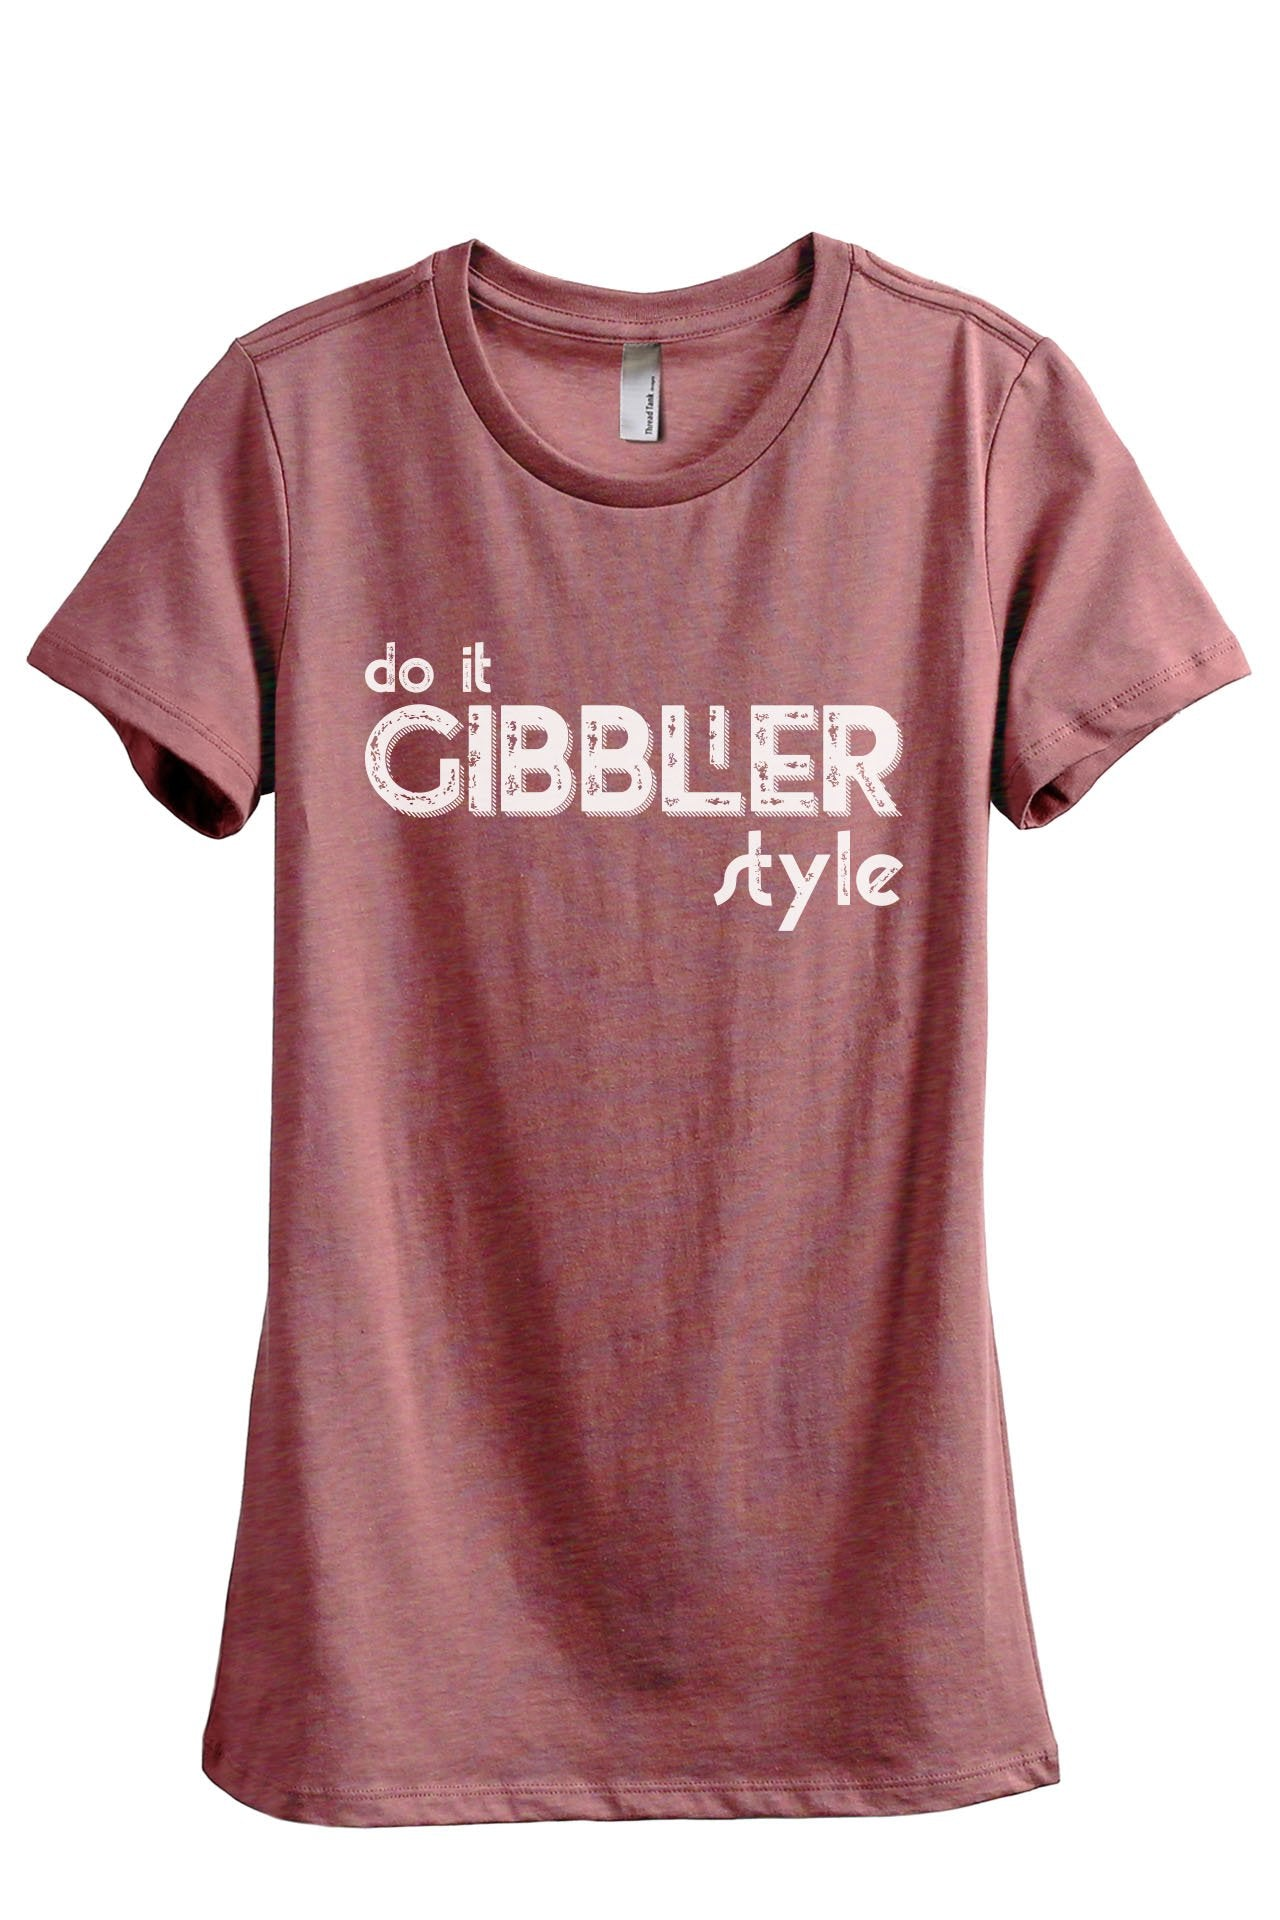 Do It Gibbler Style - Thread Tank | Stories You Can Wear | T-Shirts, Tank Tops and Sweatshirts